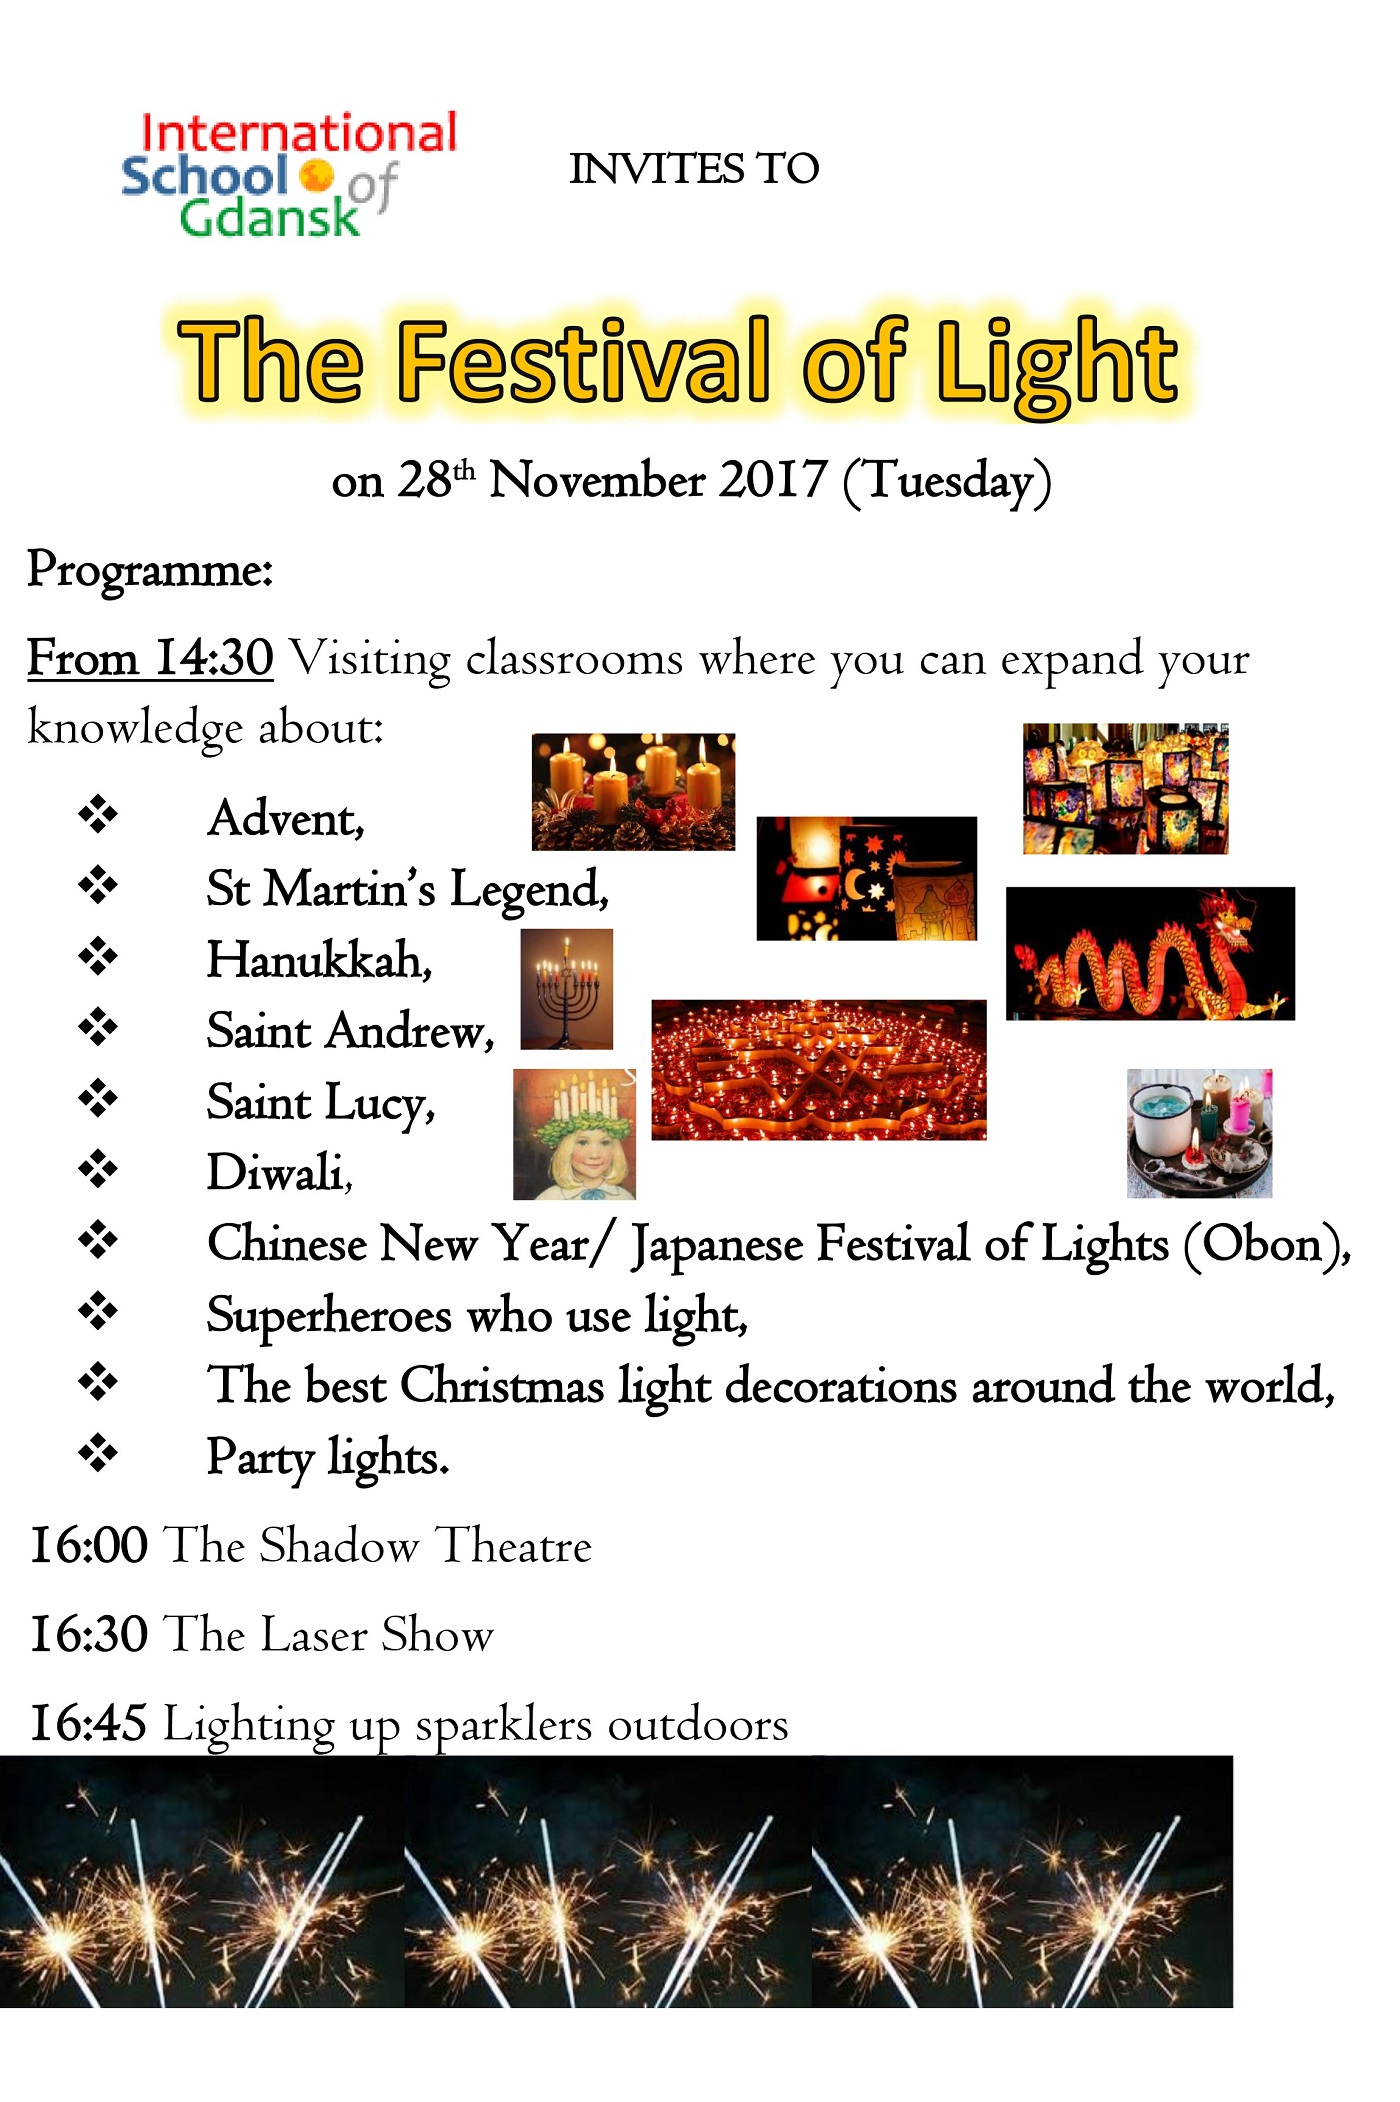 Festival of Light invitation